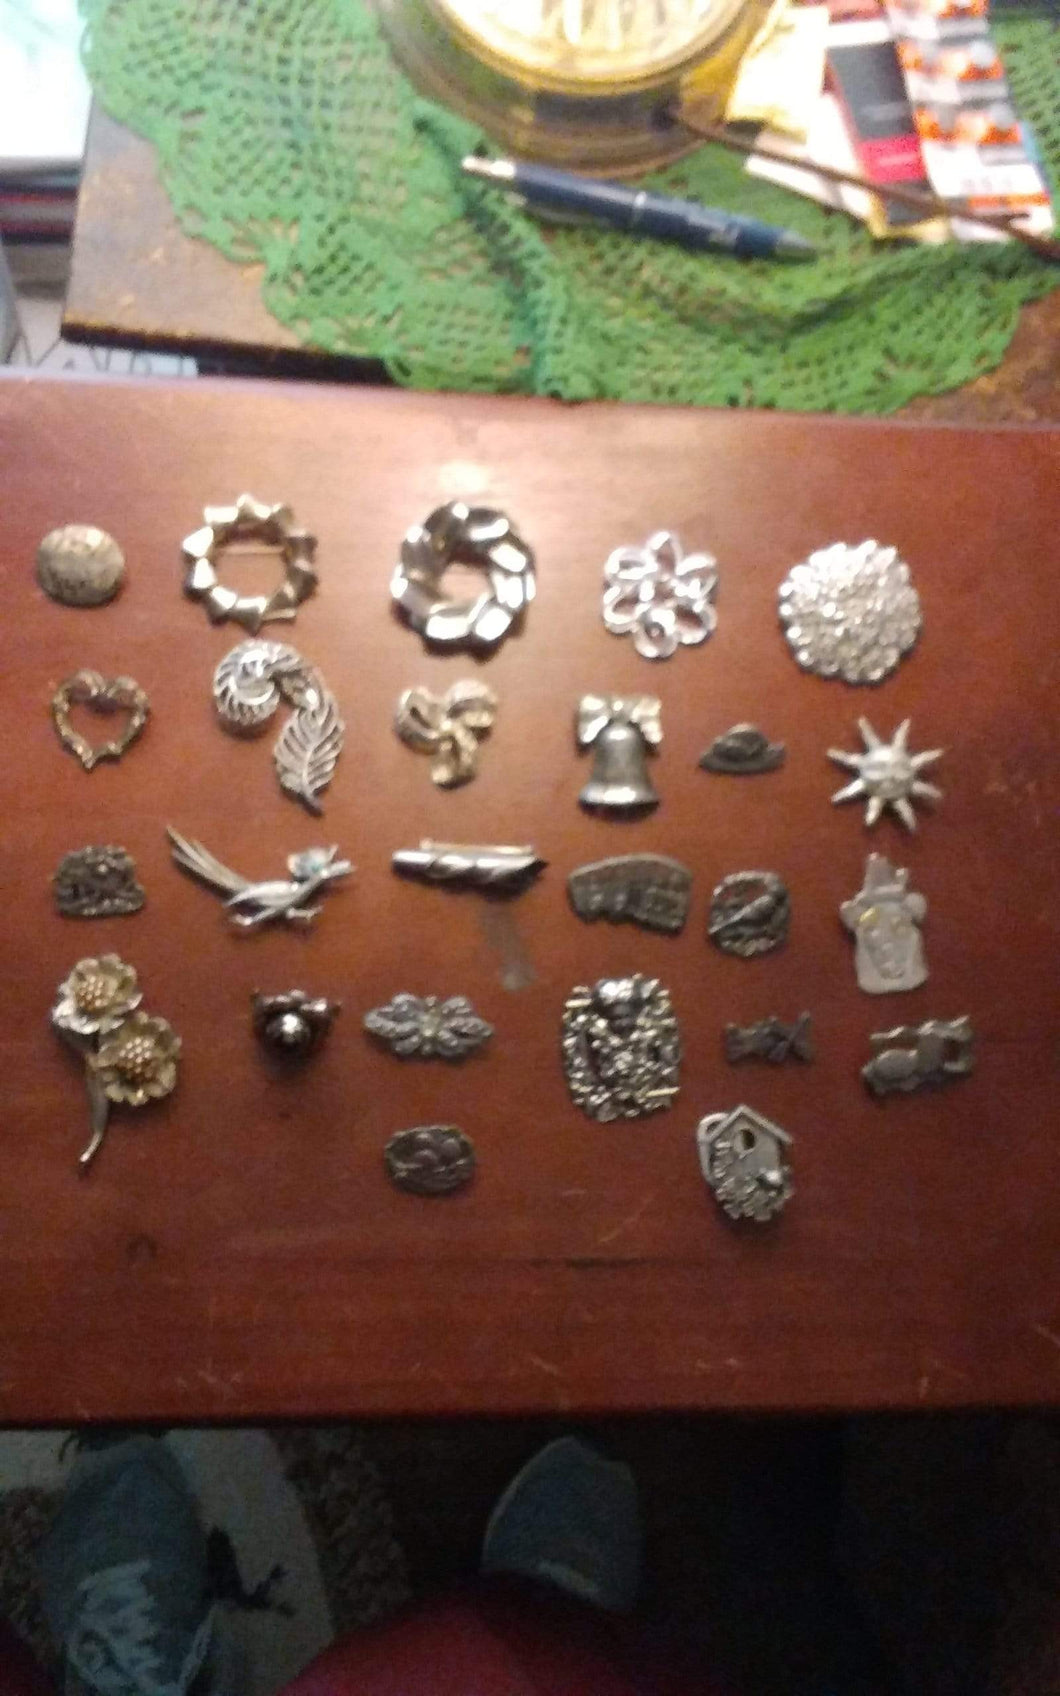 Lot of silver tone broaches - B&P'sringsnthings